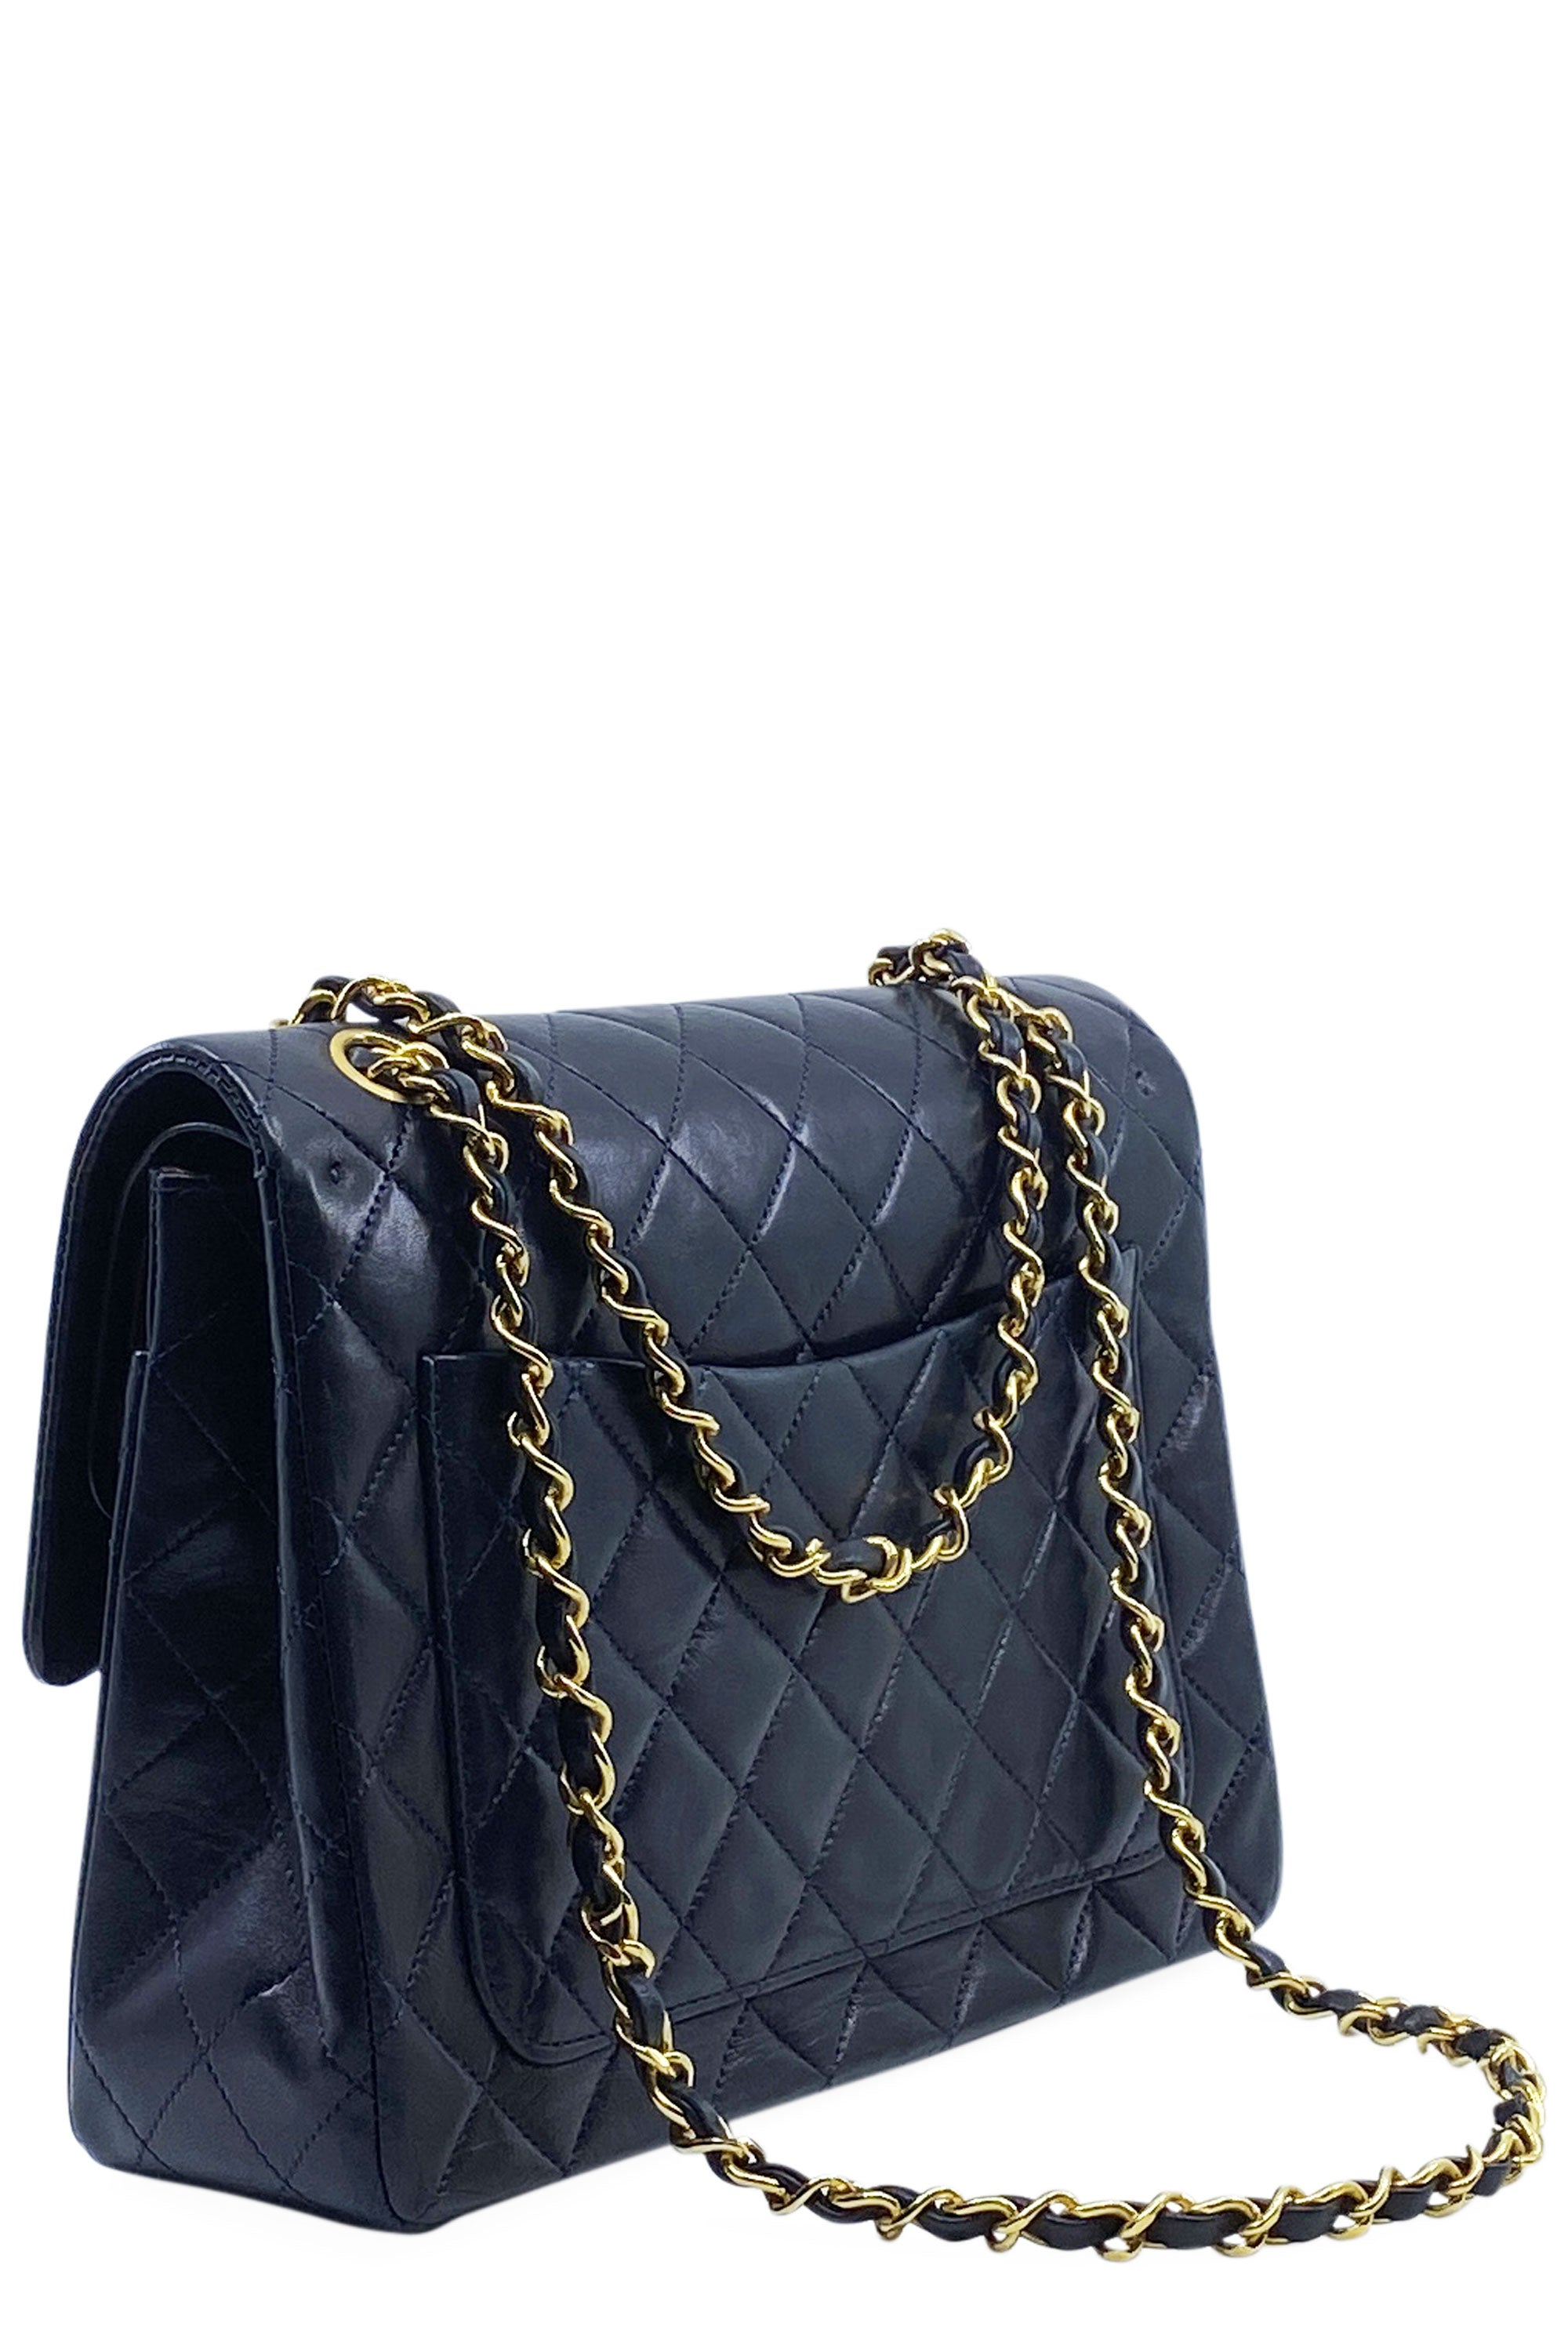 CHANEL Vintage Double Flap Bag Nightblue Square